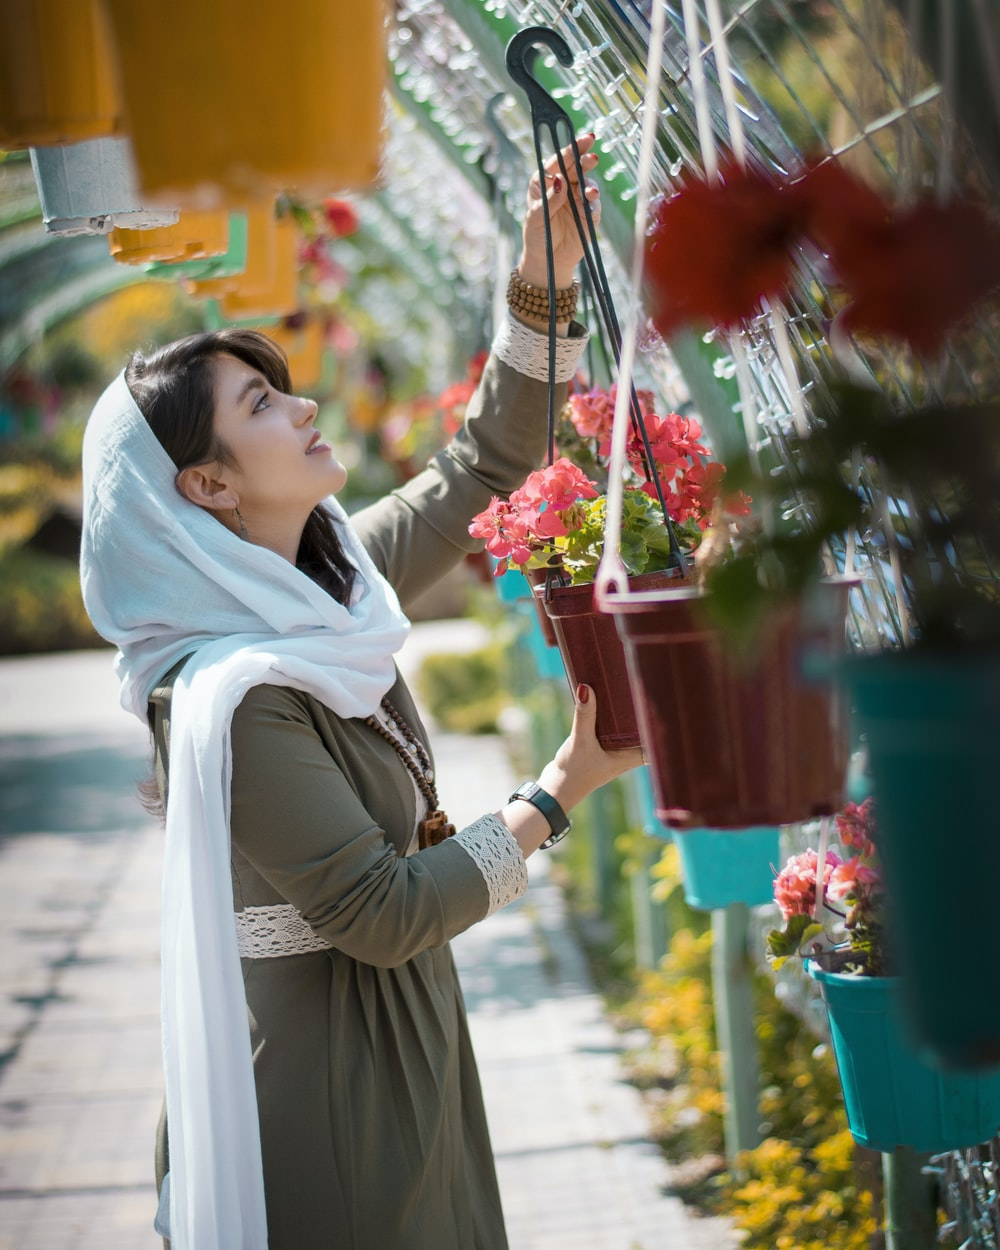 woman in white hijab holding red flower bouquet